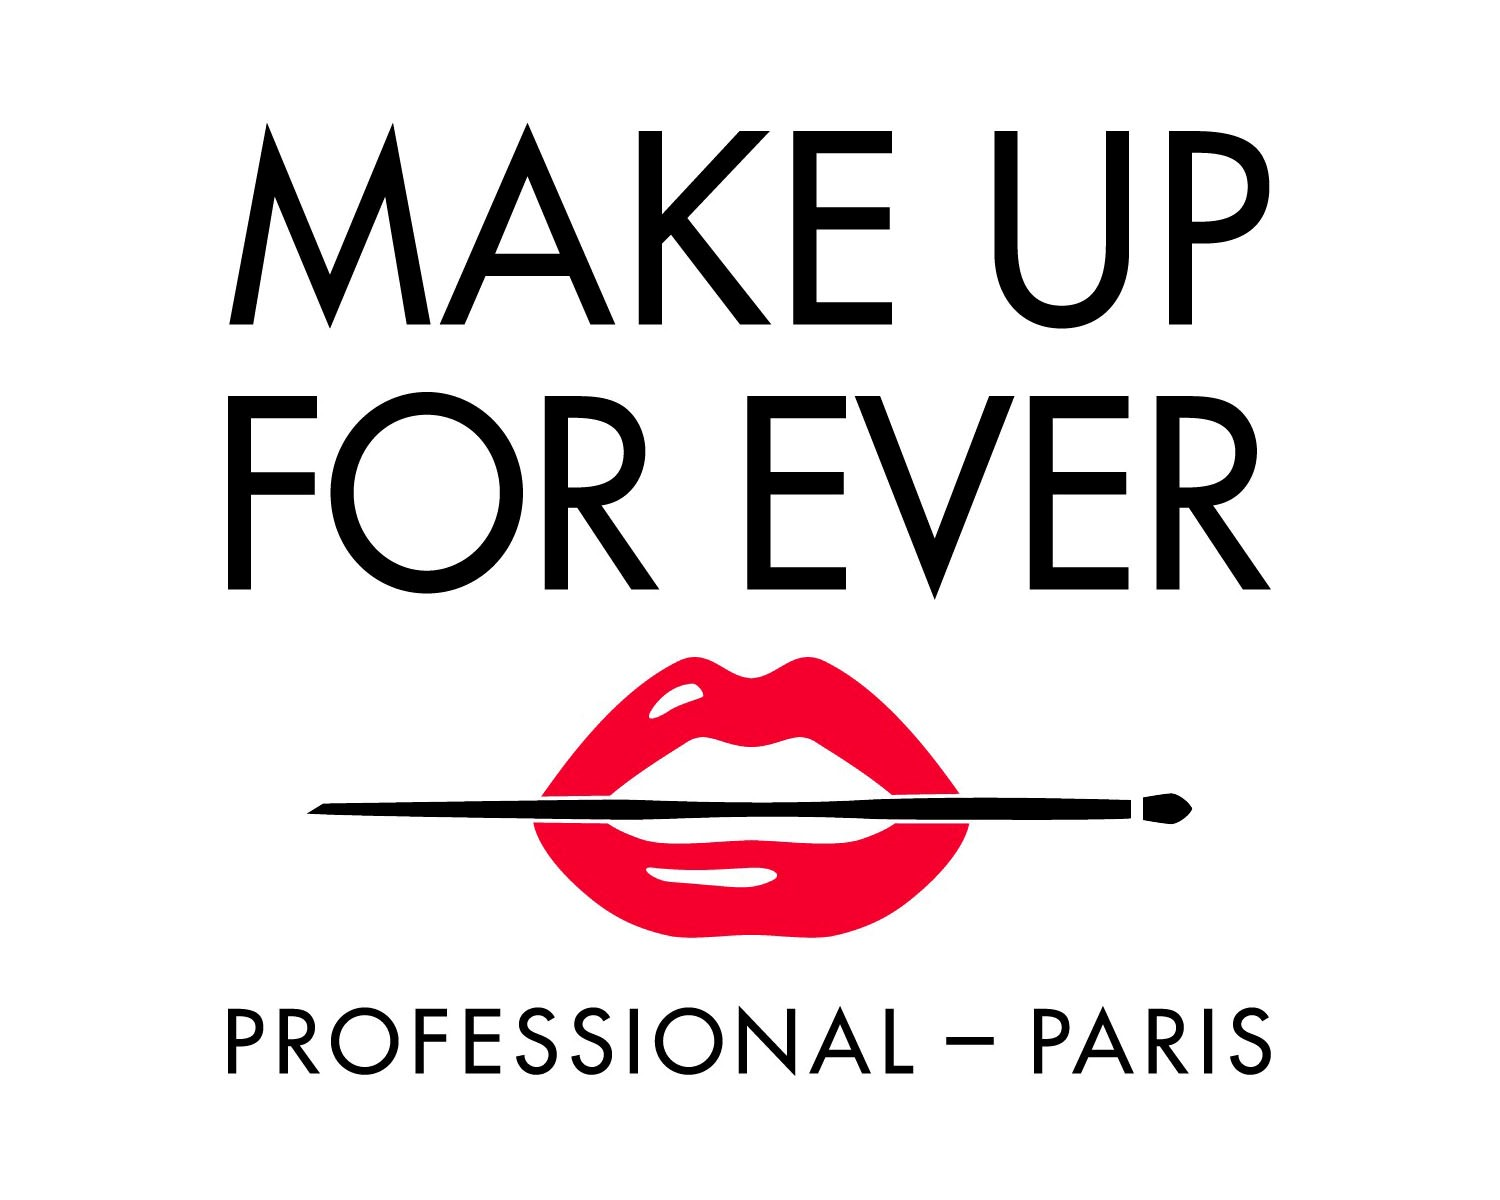 Make-up FOR EVER